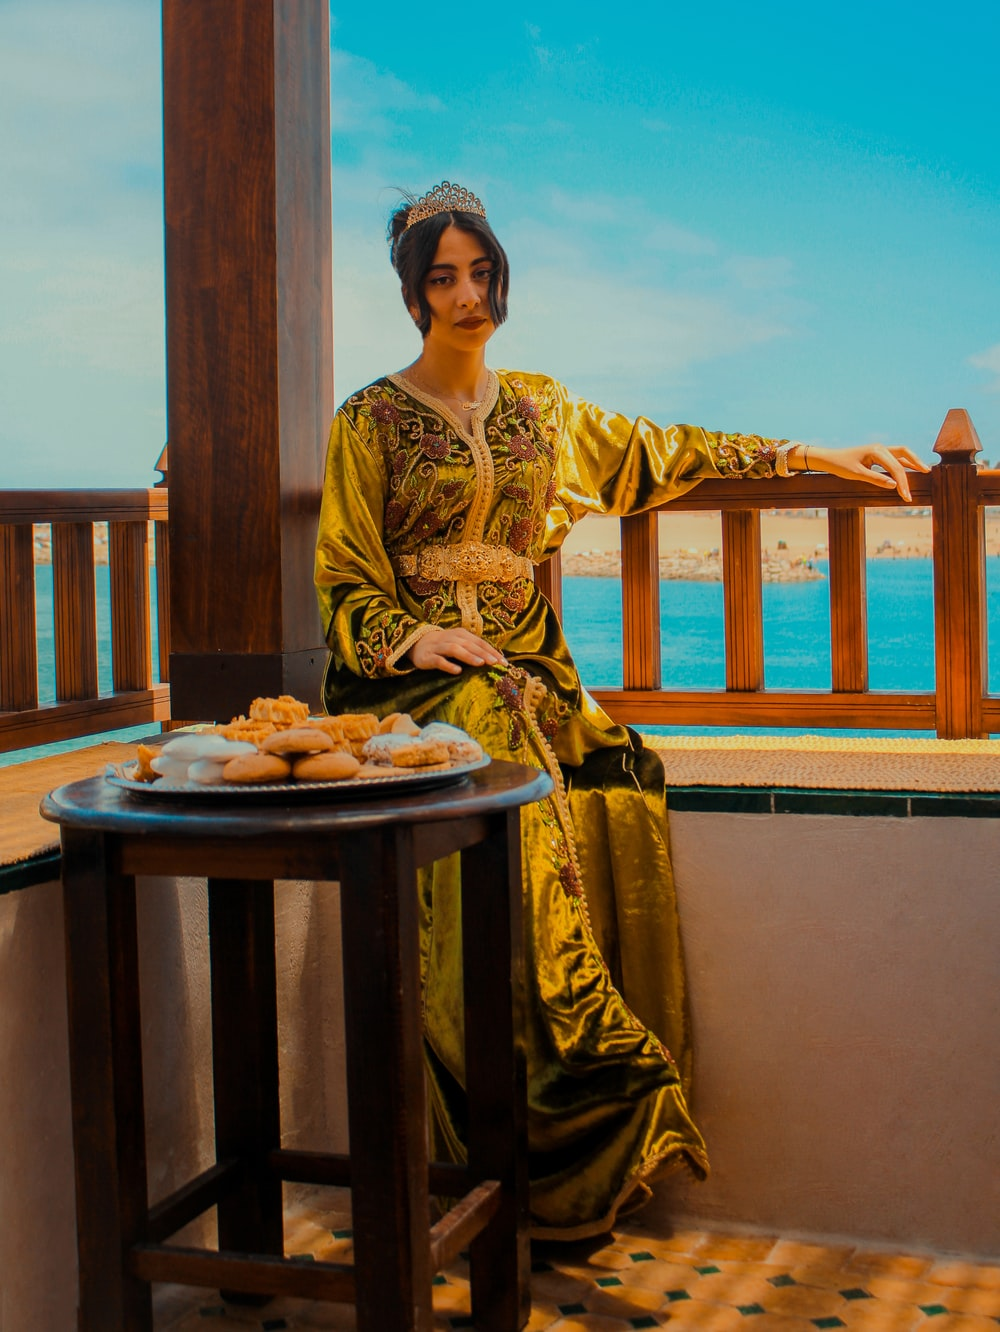 woman in yellow and brown long sleeve dress sitting on brown wooden chair